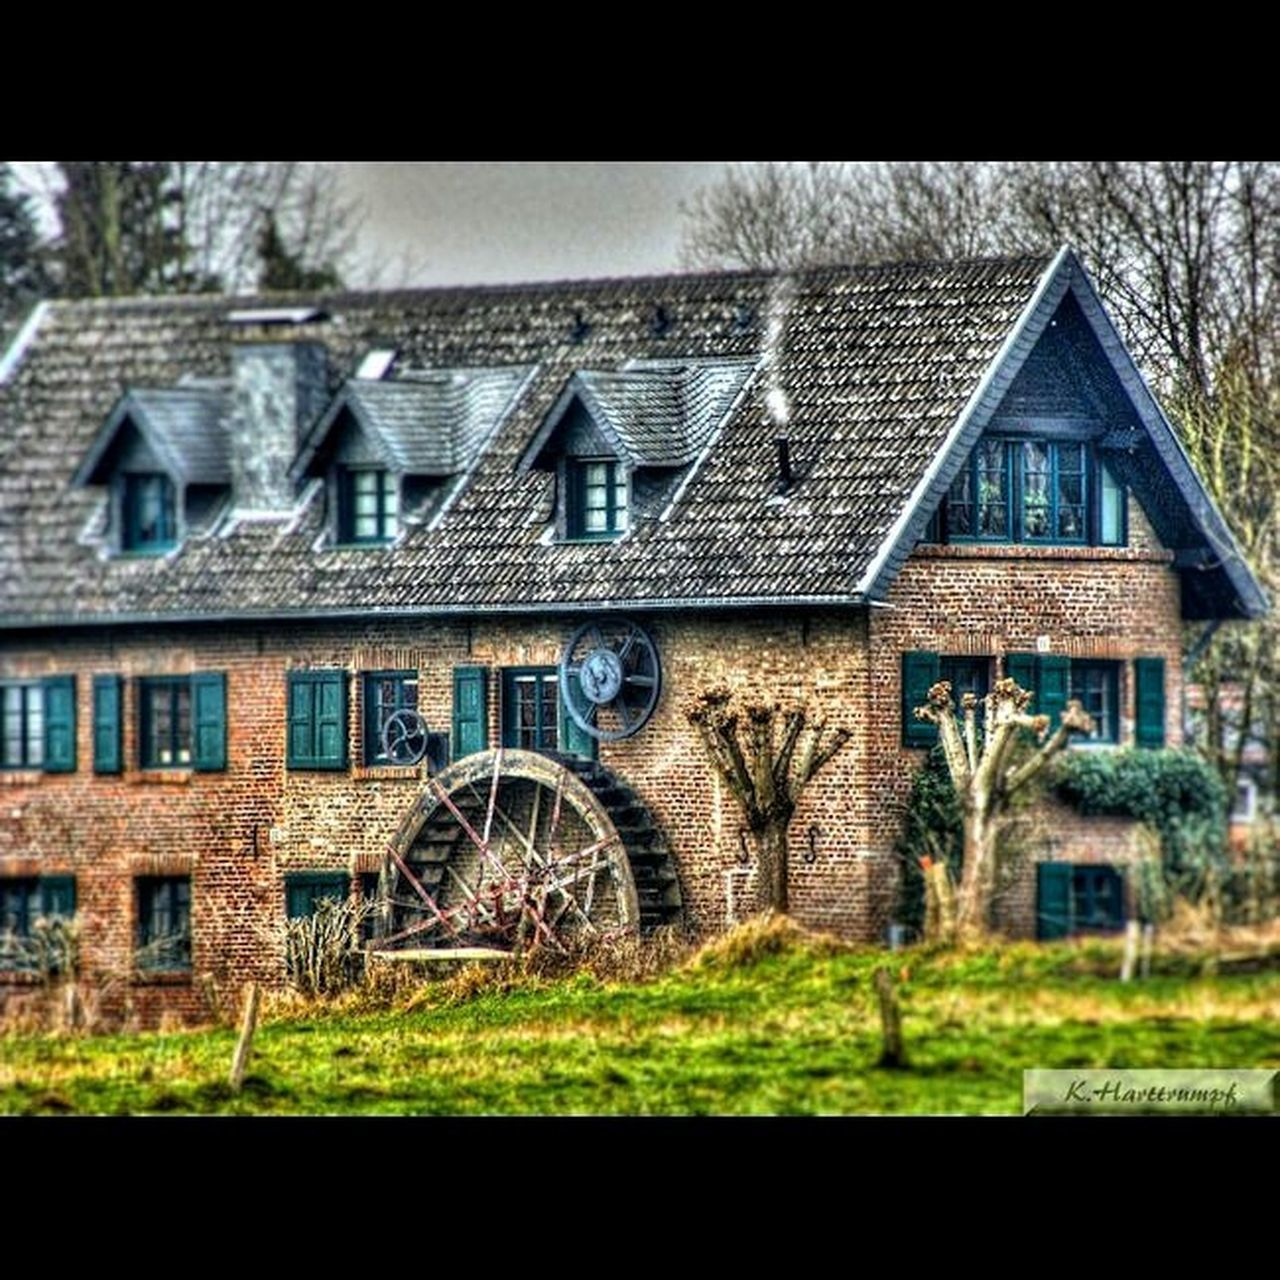 architecture, building exterior, built structure, window, house, no people, day, outdoors, grass, sky